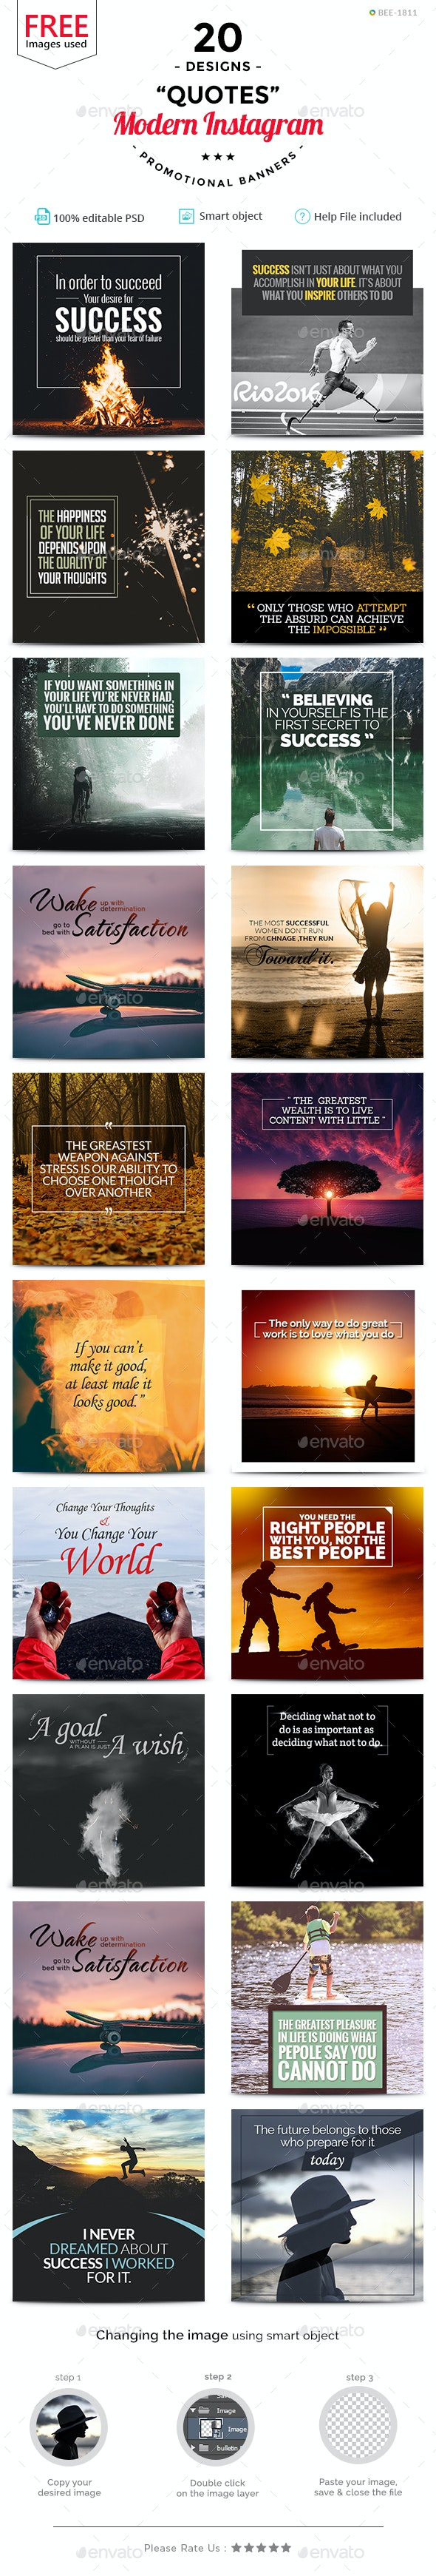 Quotes Instagram Templates - 20 Designs - Free Images - Miscellaneous Social Media